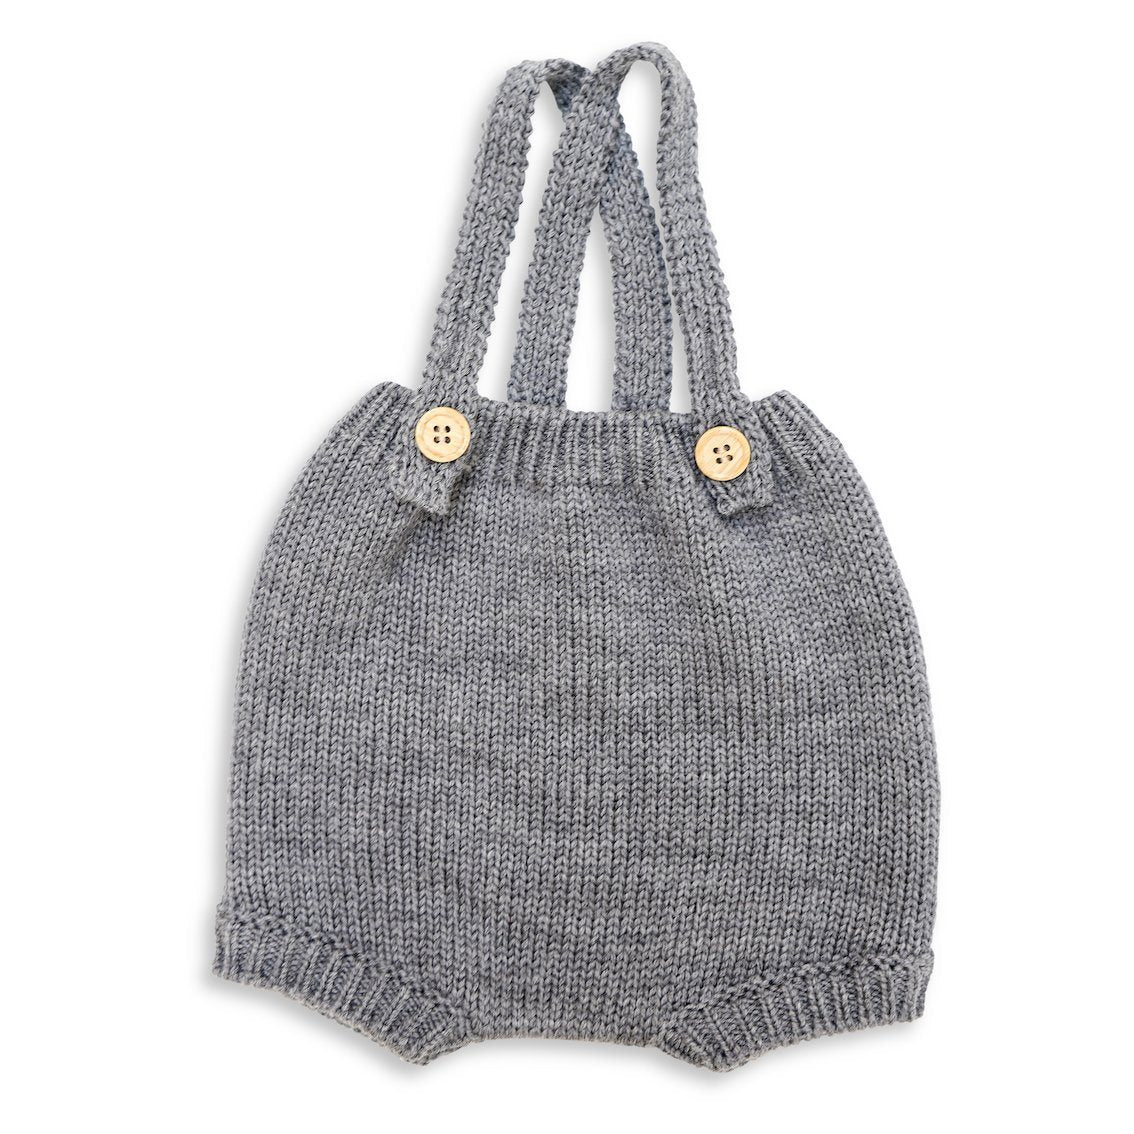 Cali Wool Knit Overalls